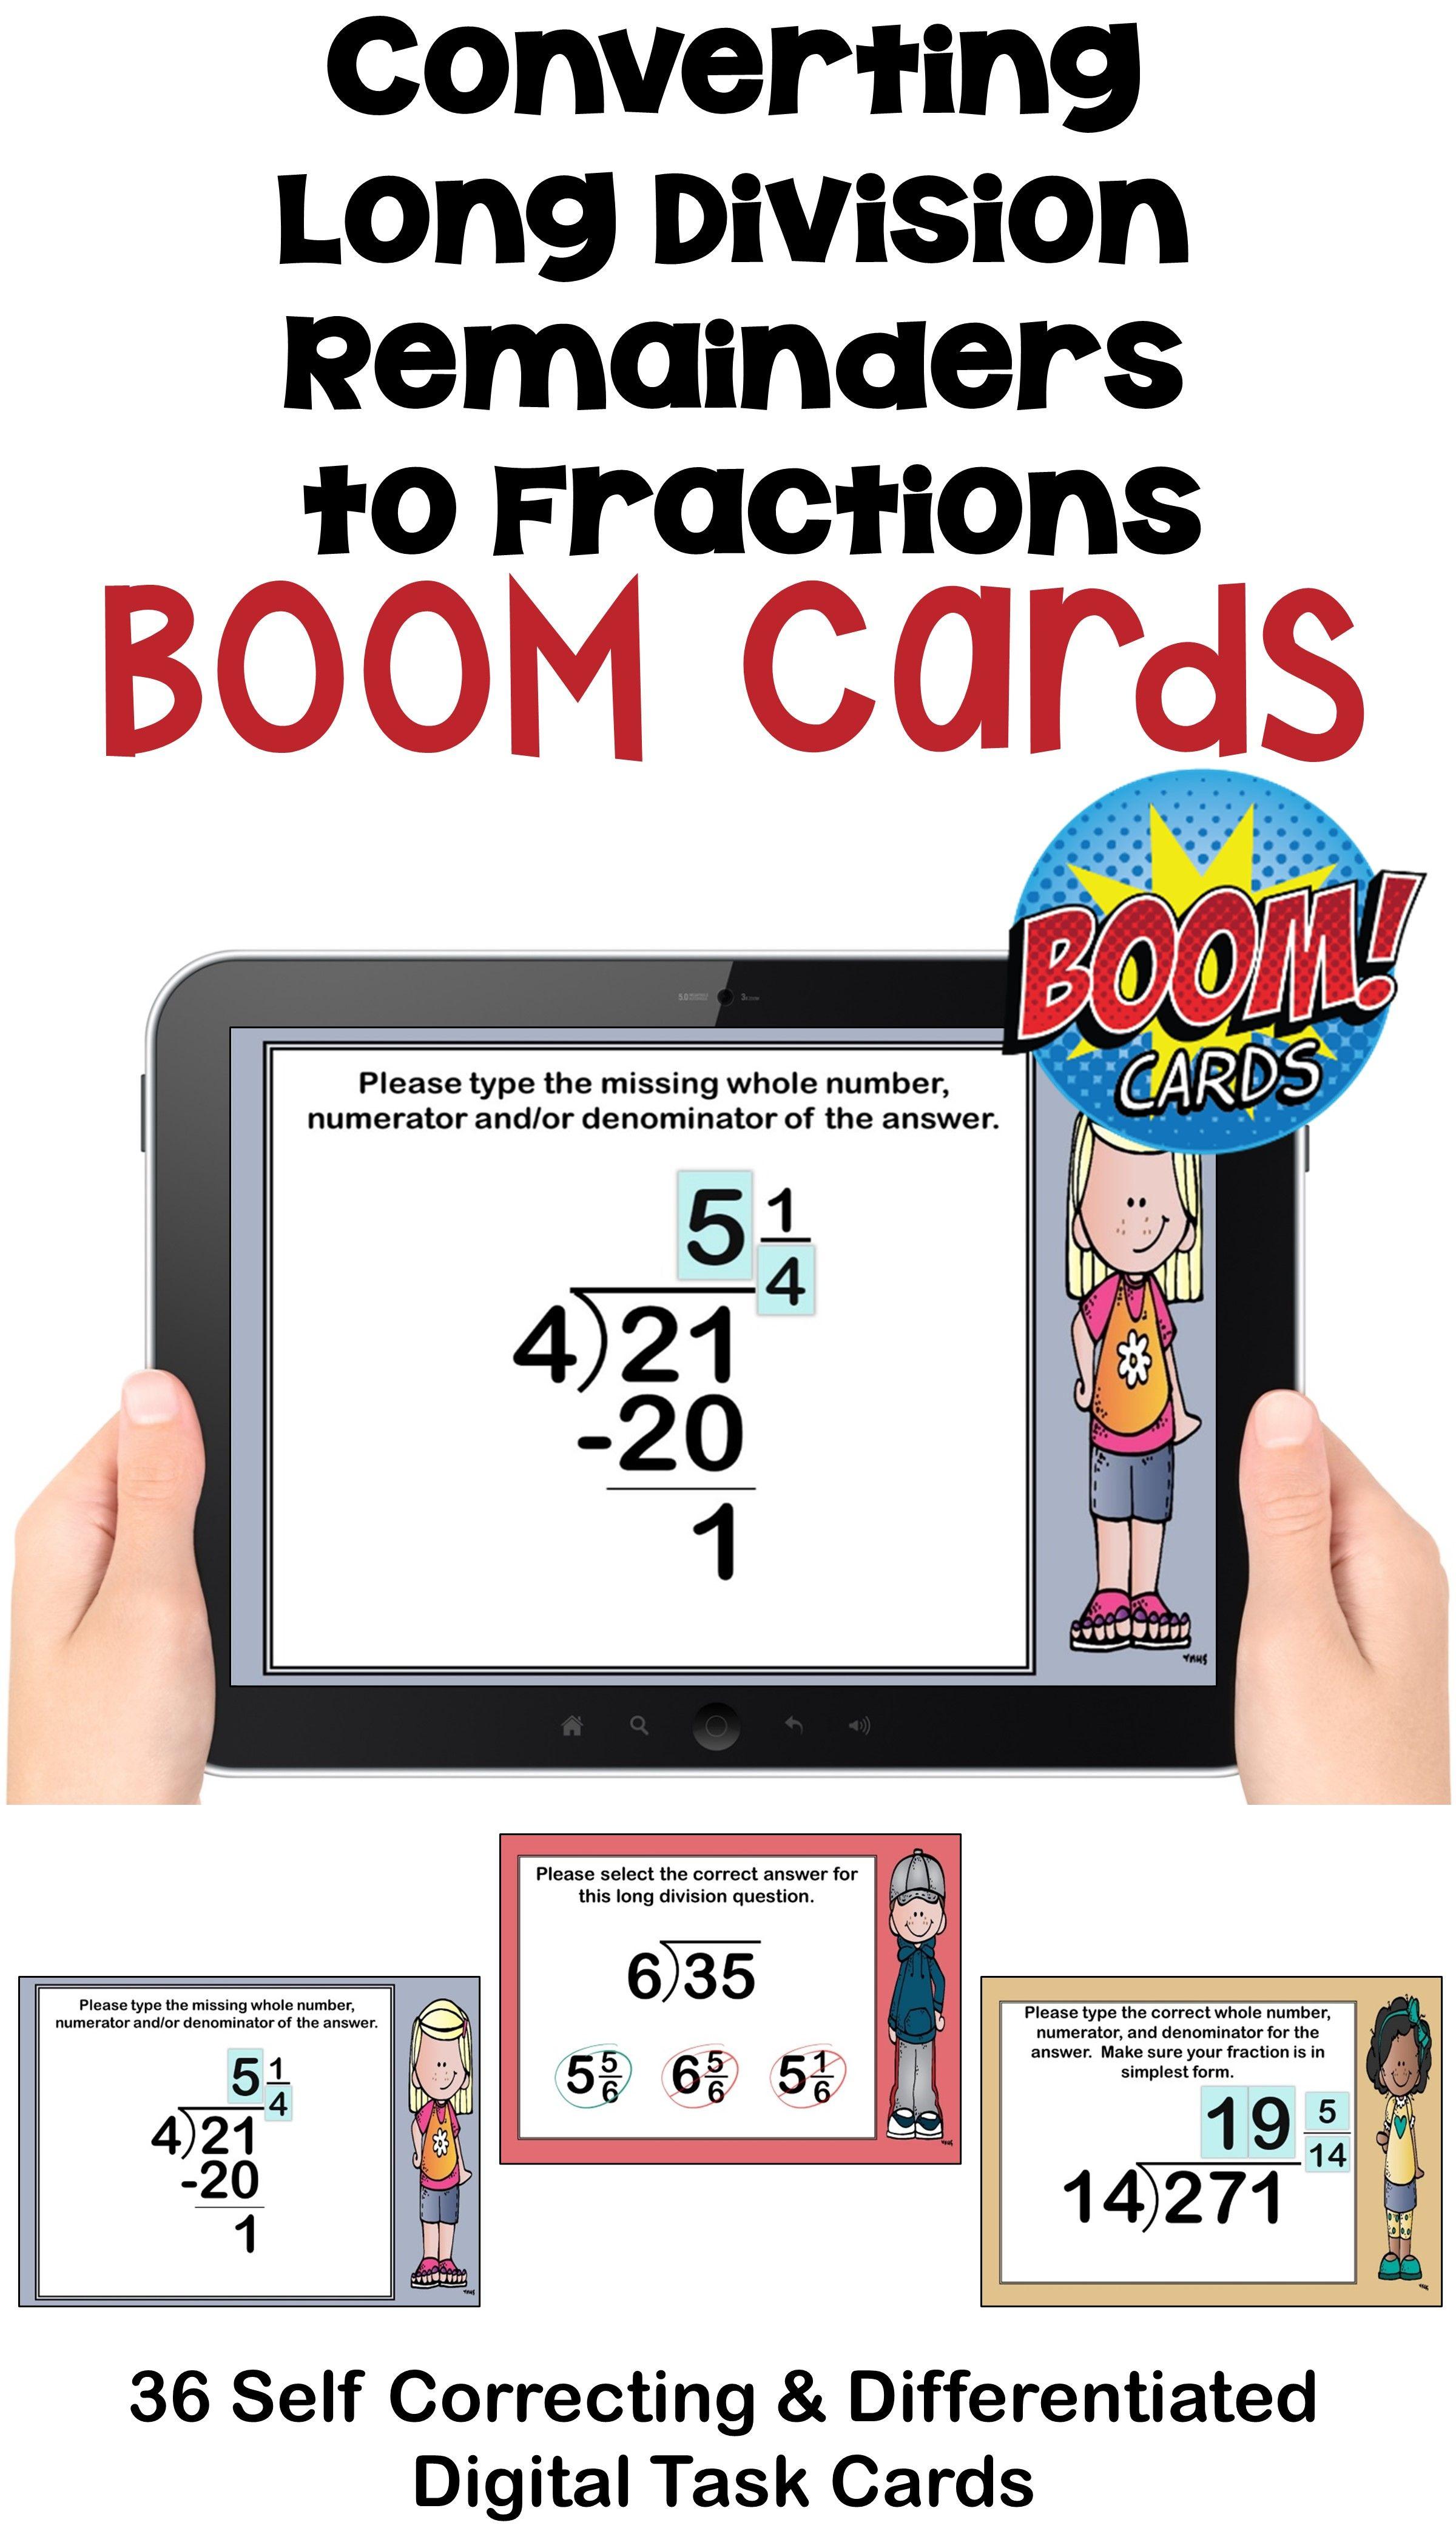 Converting Long Division Remainders To Fractions Boom